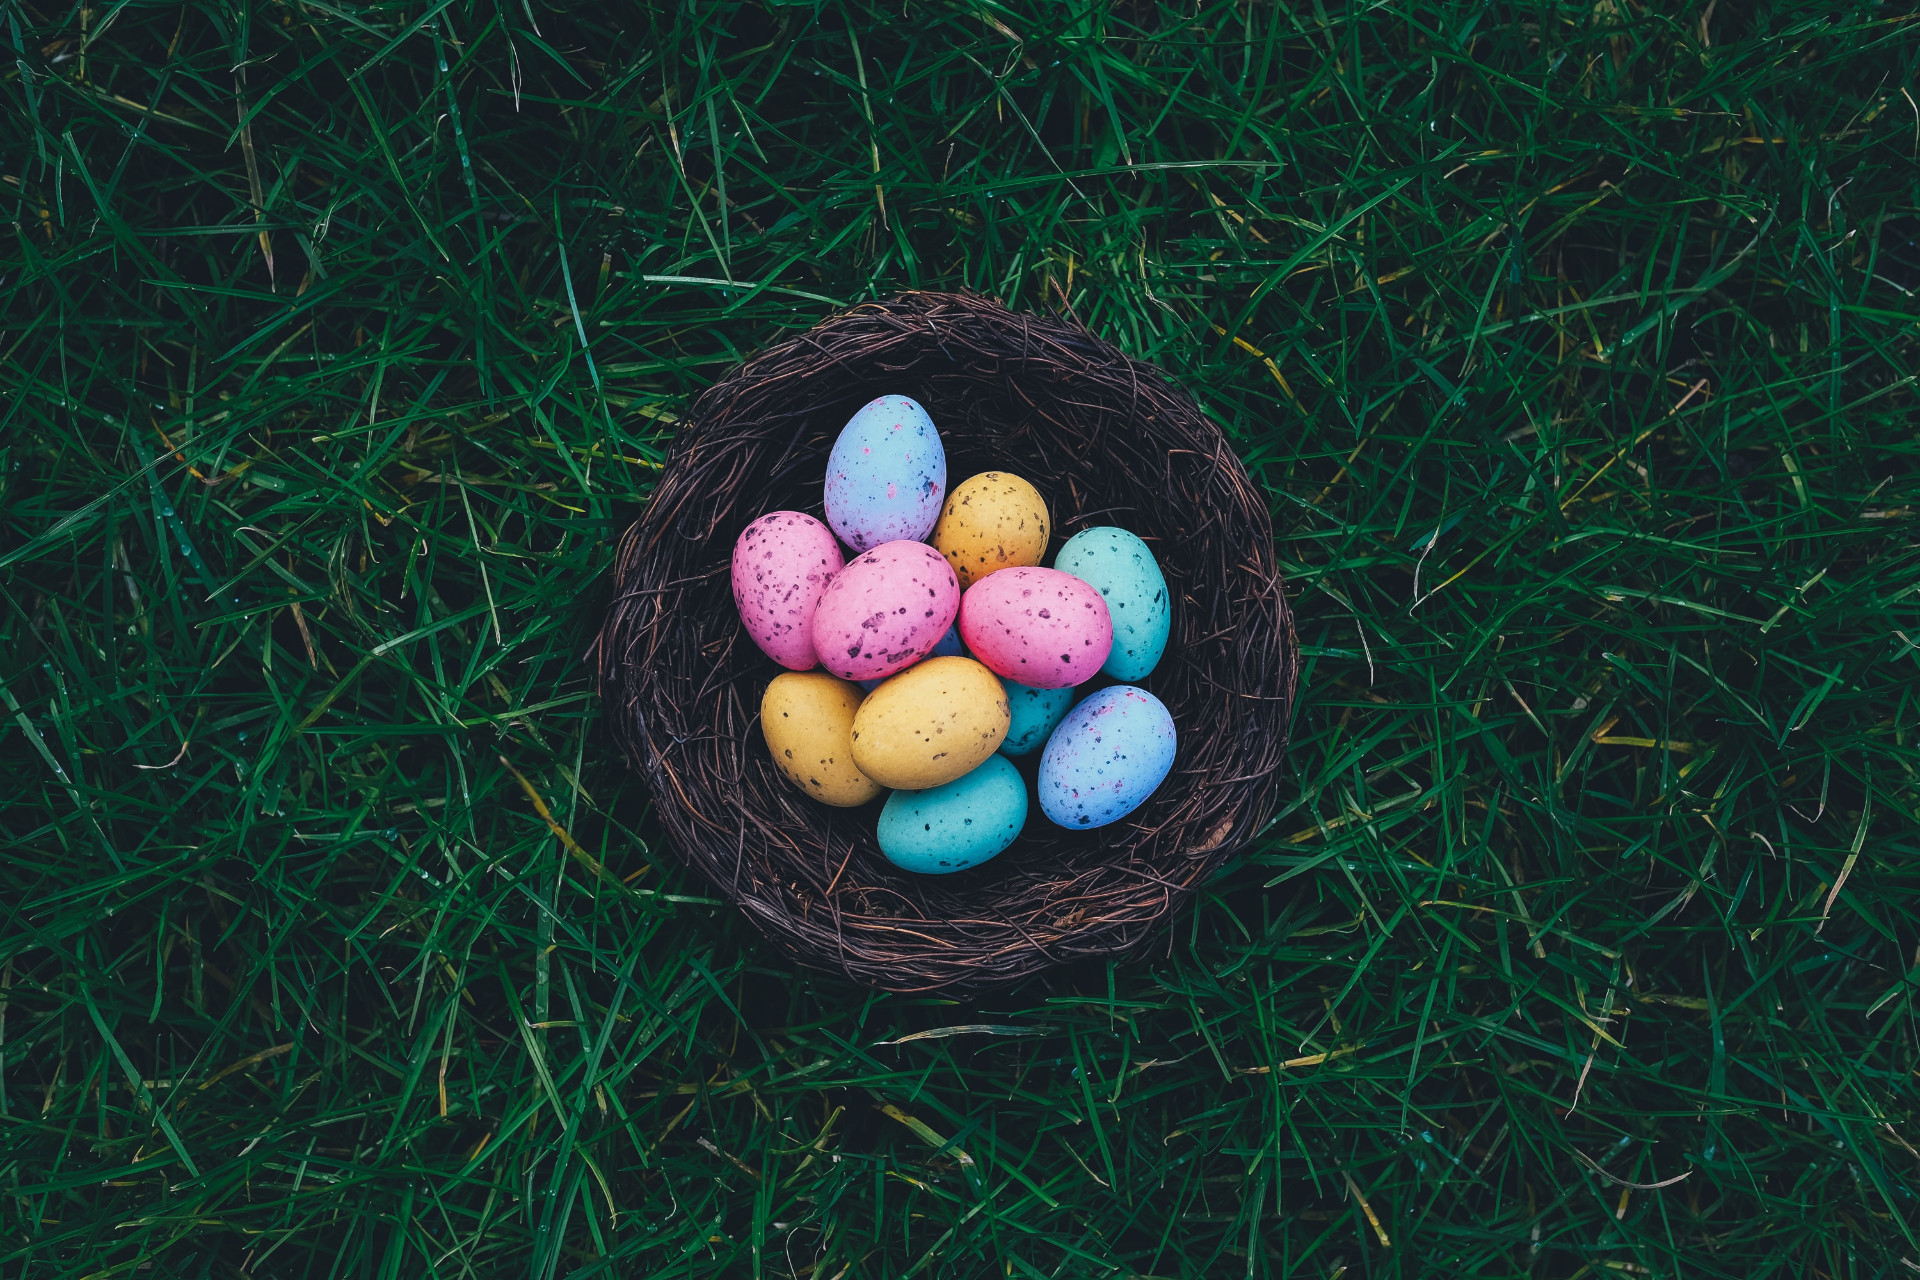 Chocolate eggs in a nest on the grass